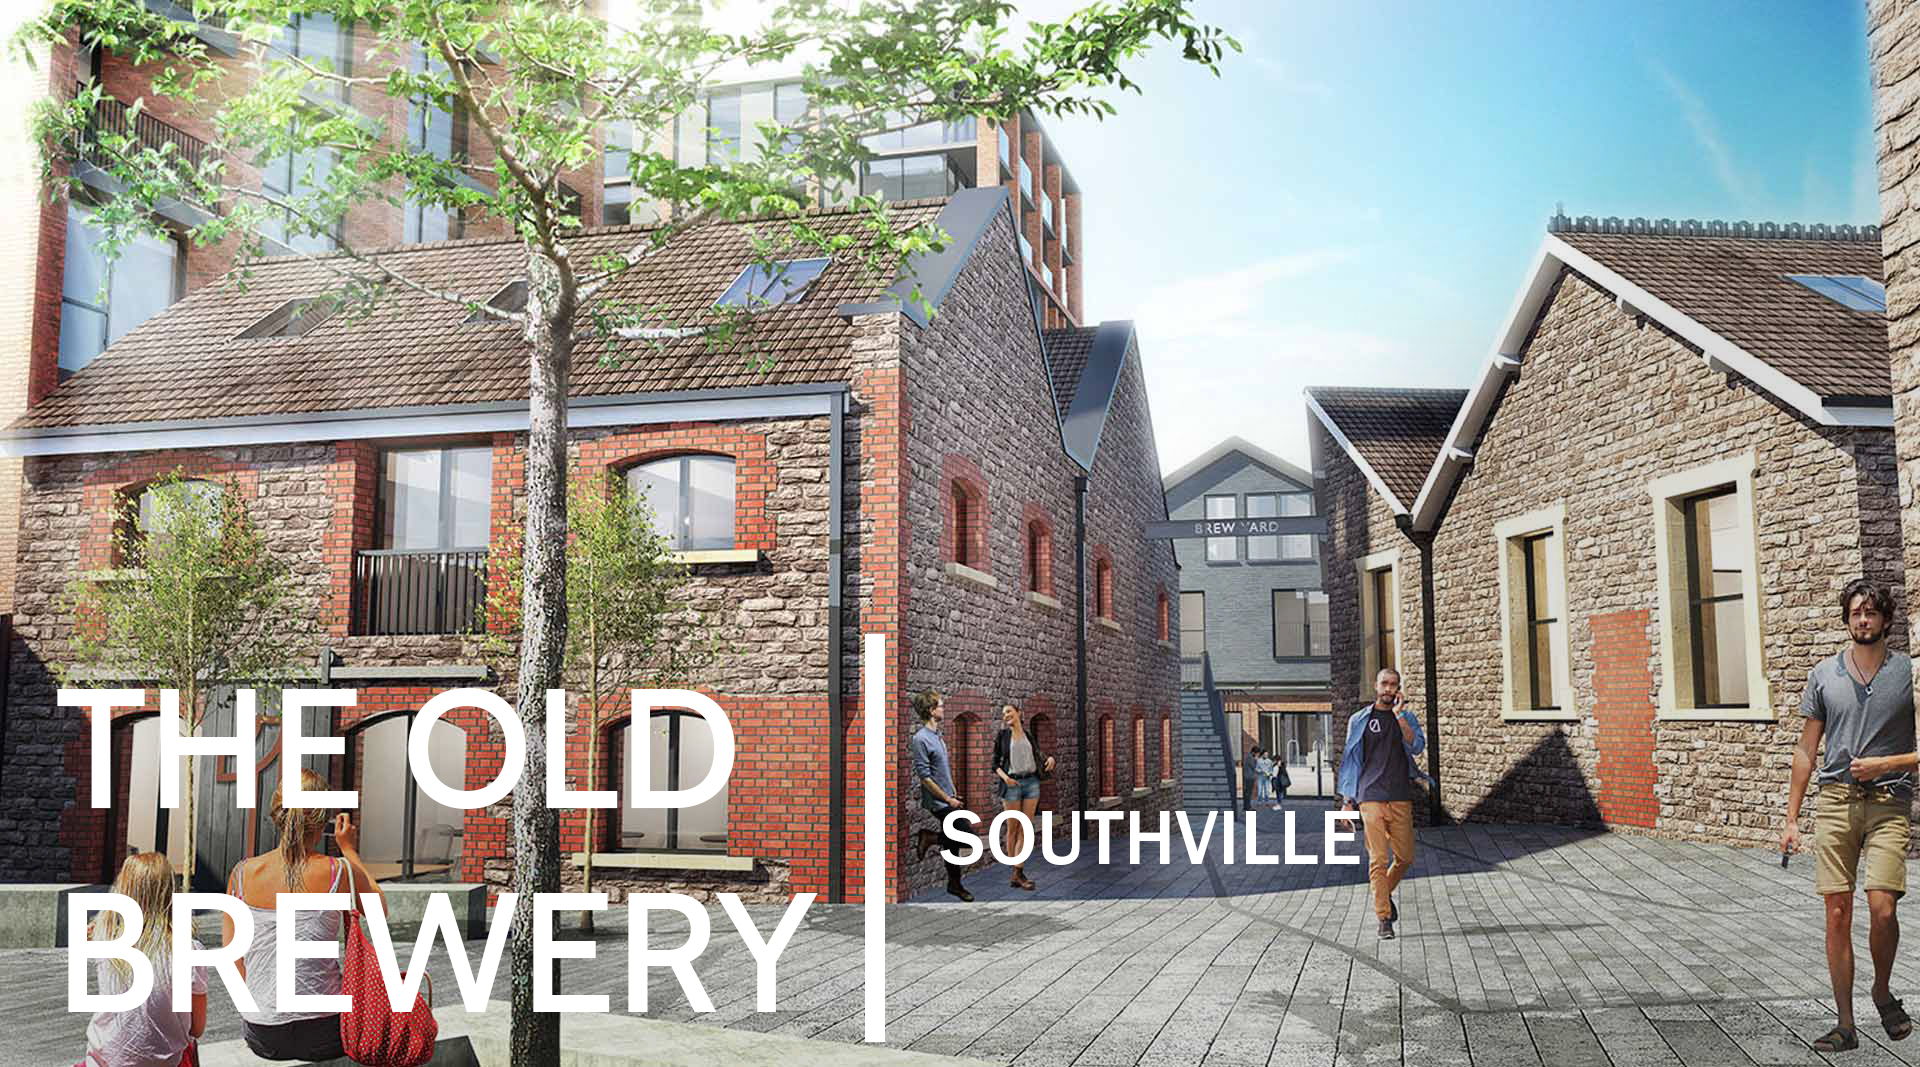 The Old Brewery, Southville